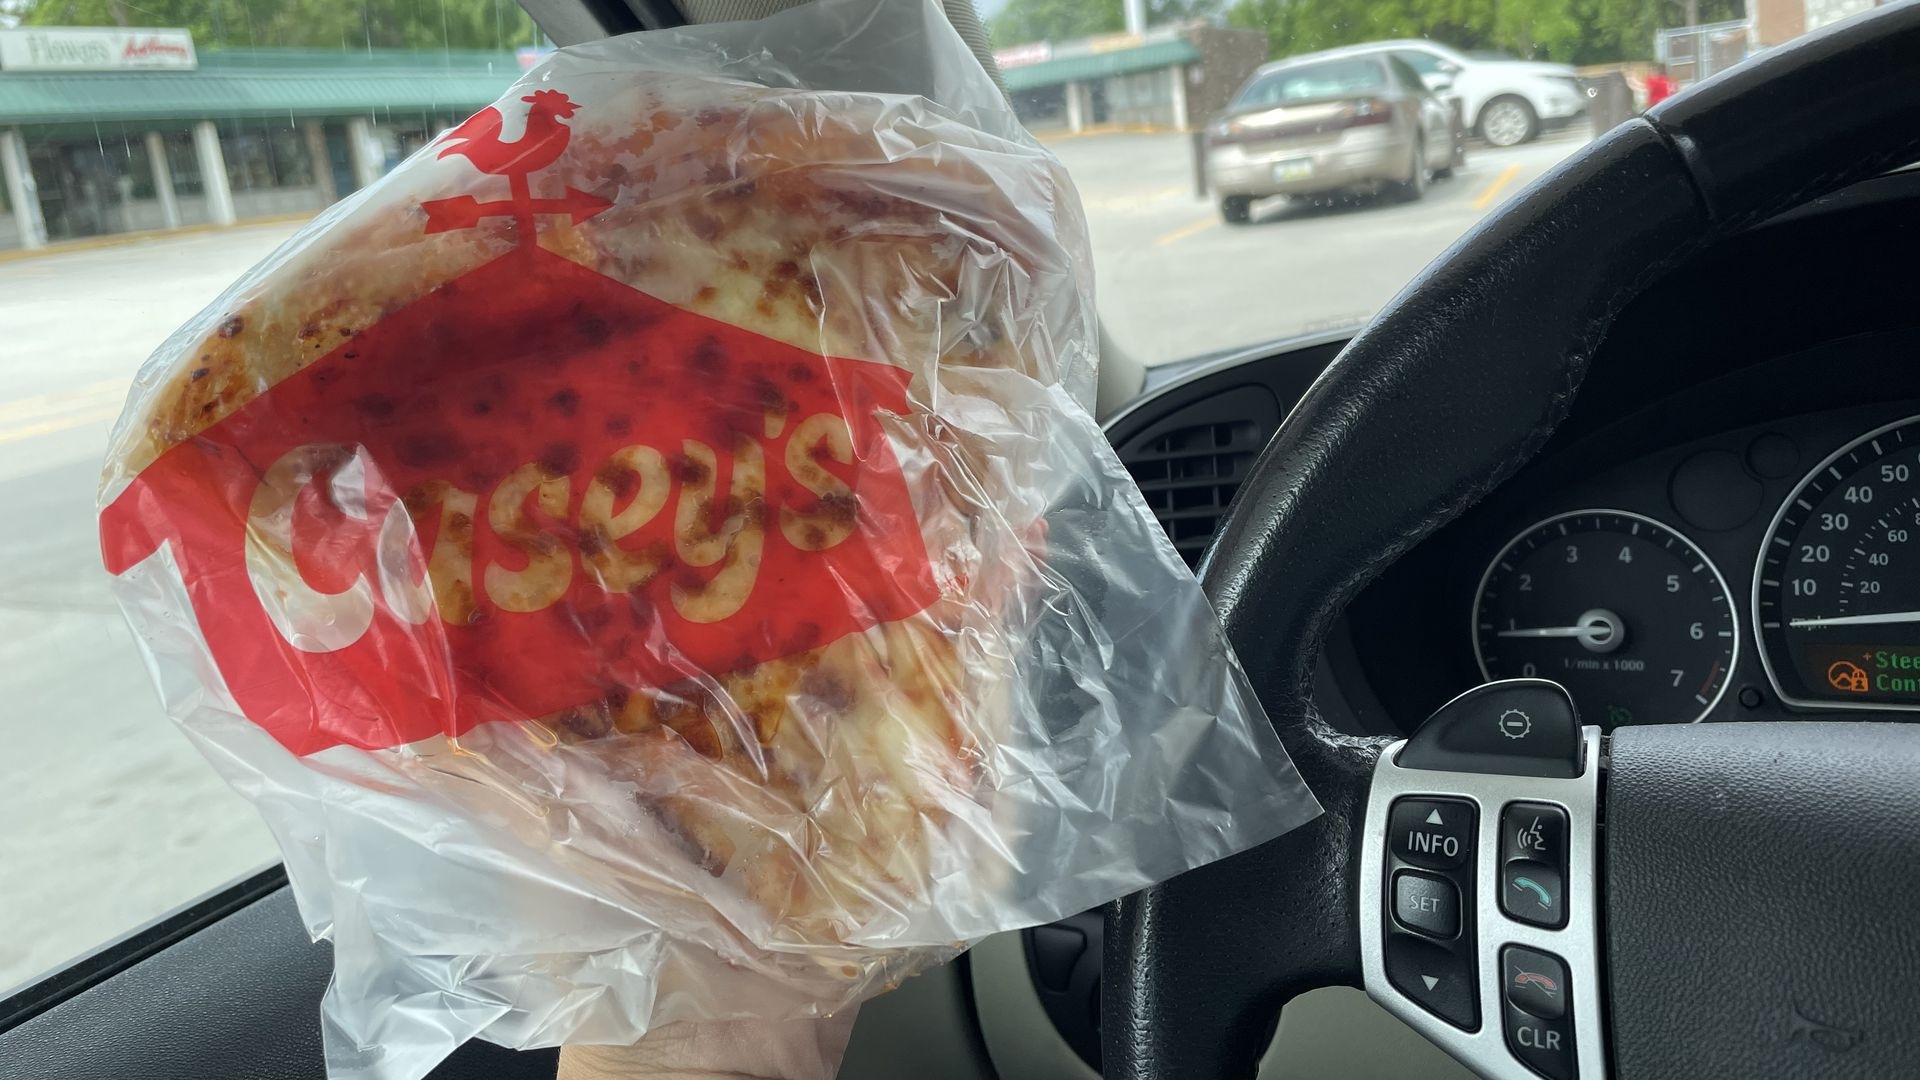 Cheese pizza in a bag from Casey's.